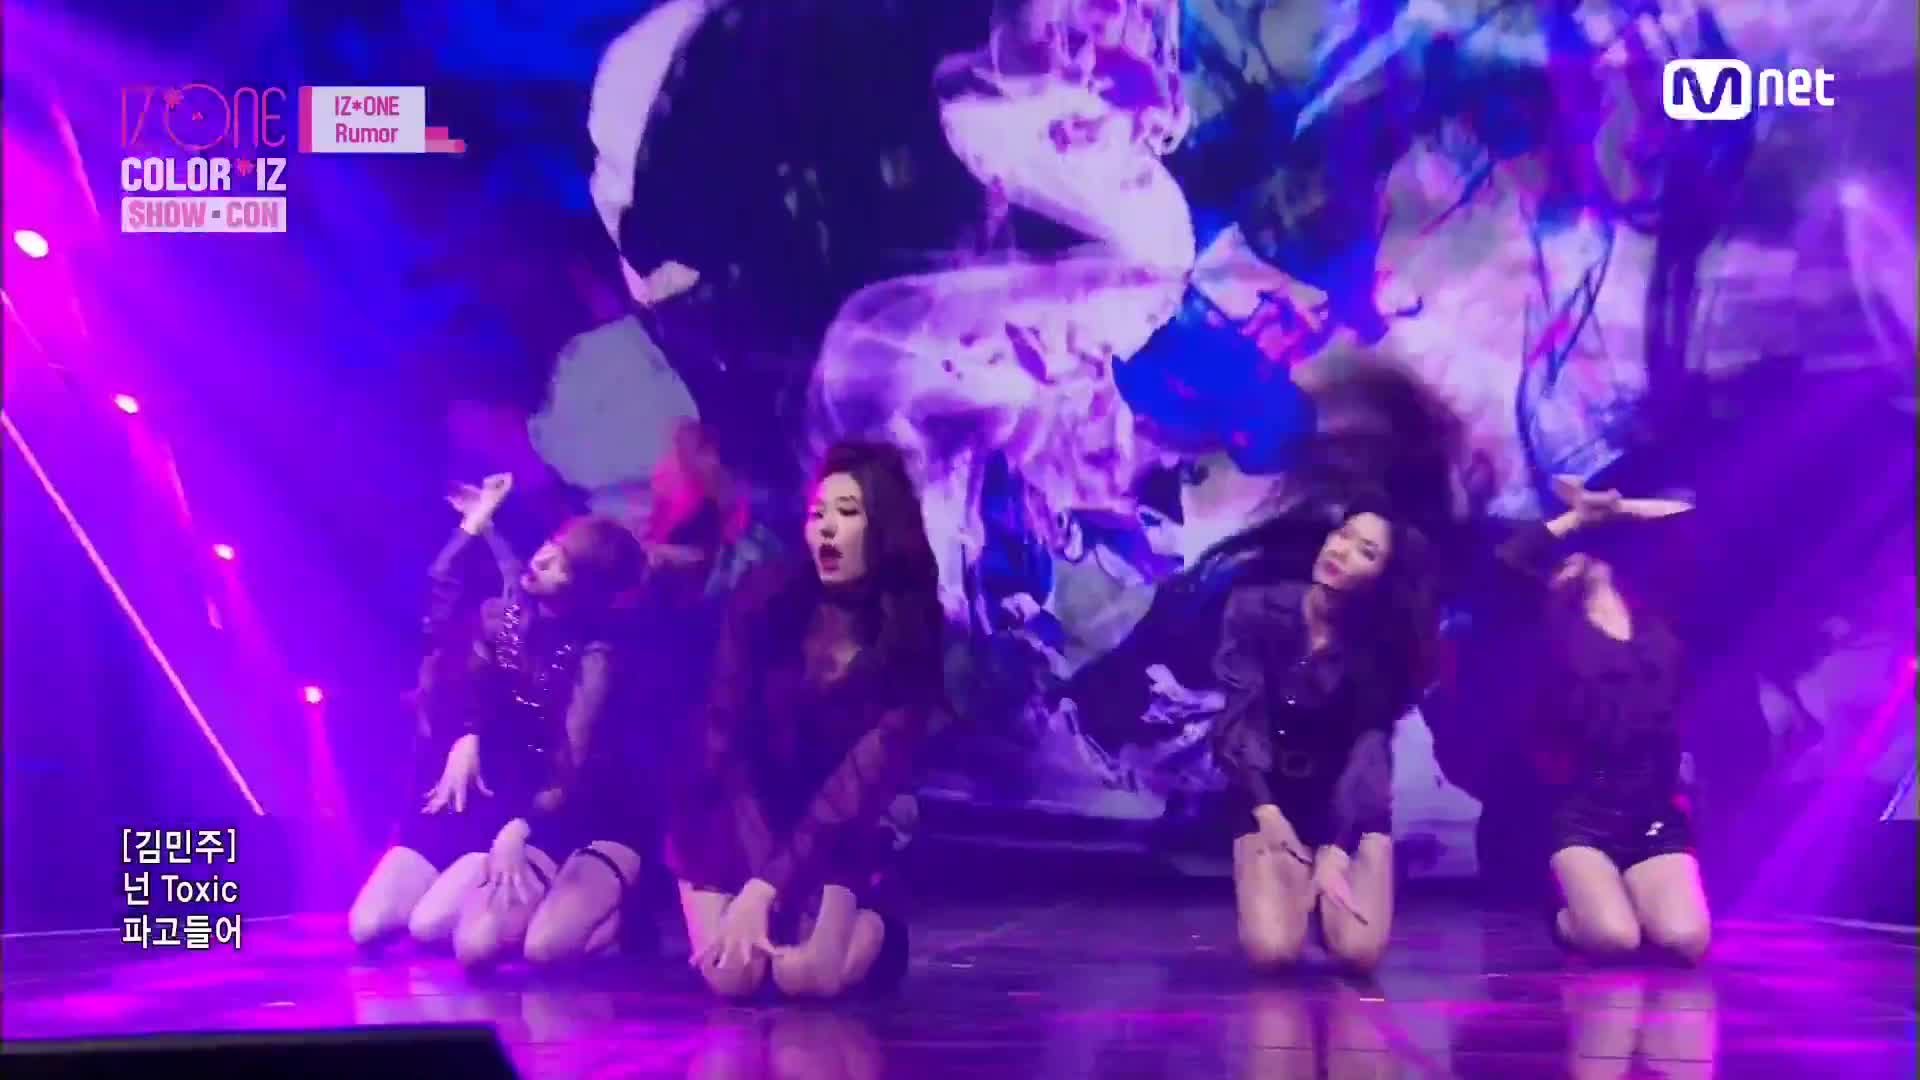 Izone Rumor Gifs Search | Search & Share on Homdor